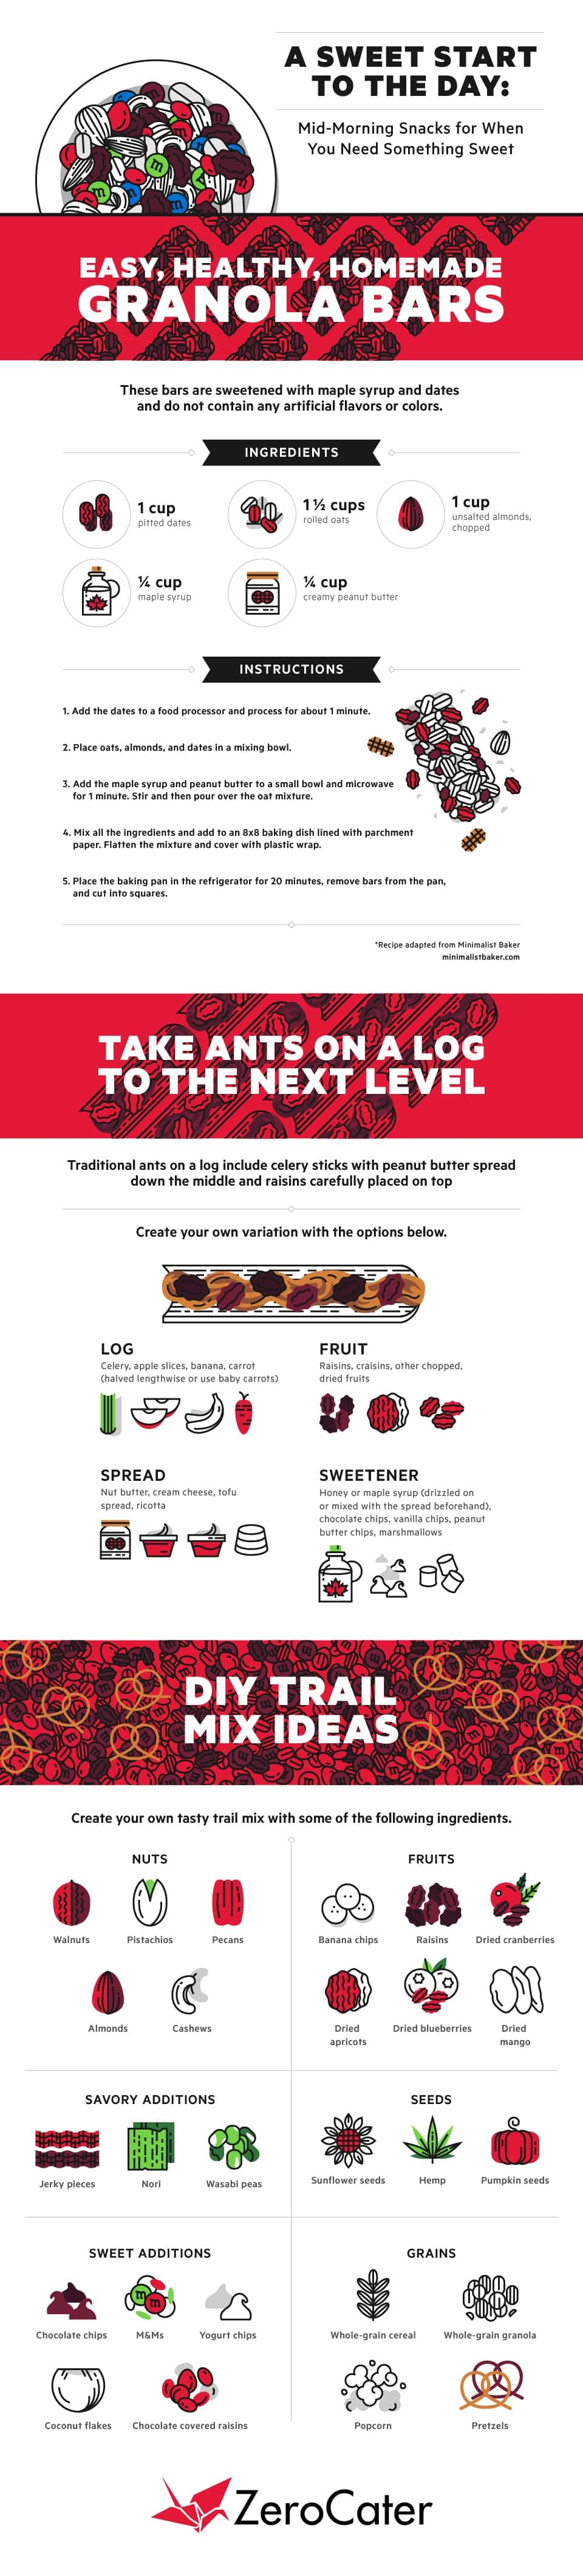 Mid-morning Snack Ideas: When You Crave for Something Sweet - Infographic